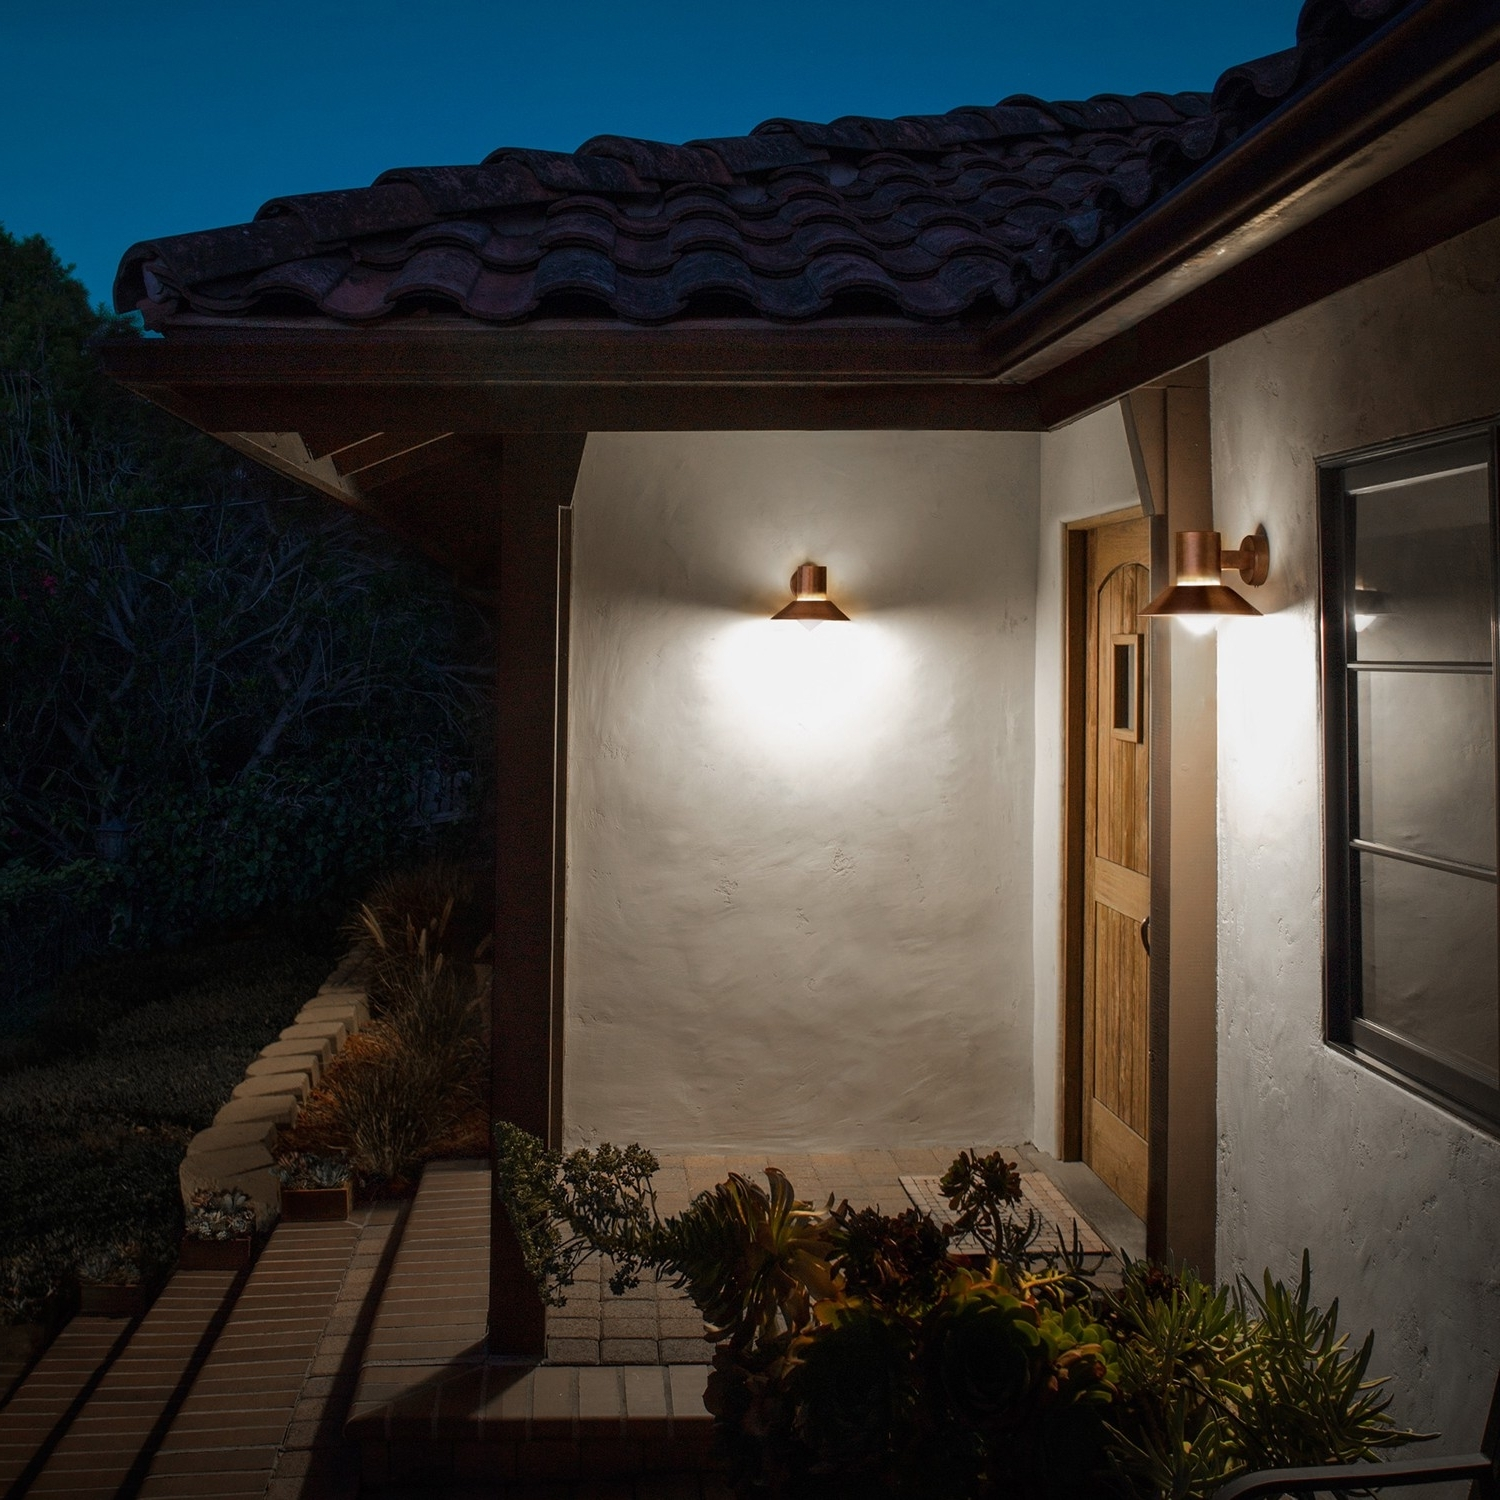 Design Necessities Regarding Small Outdoor Wall Lights (View 5 of 20)